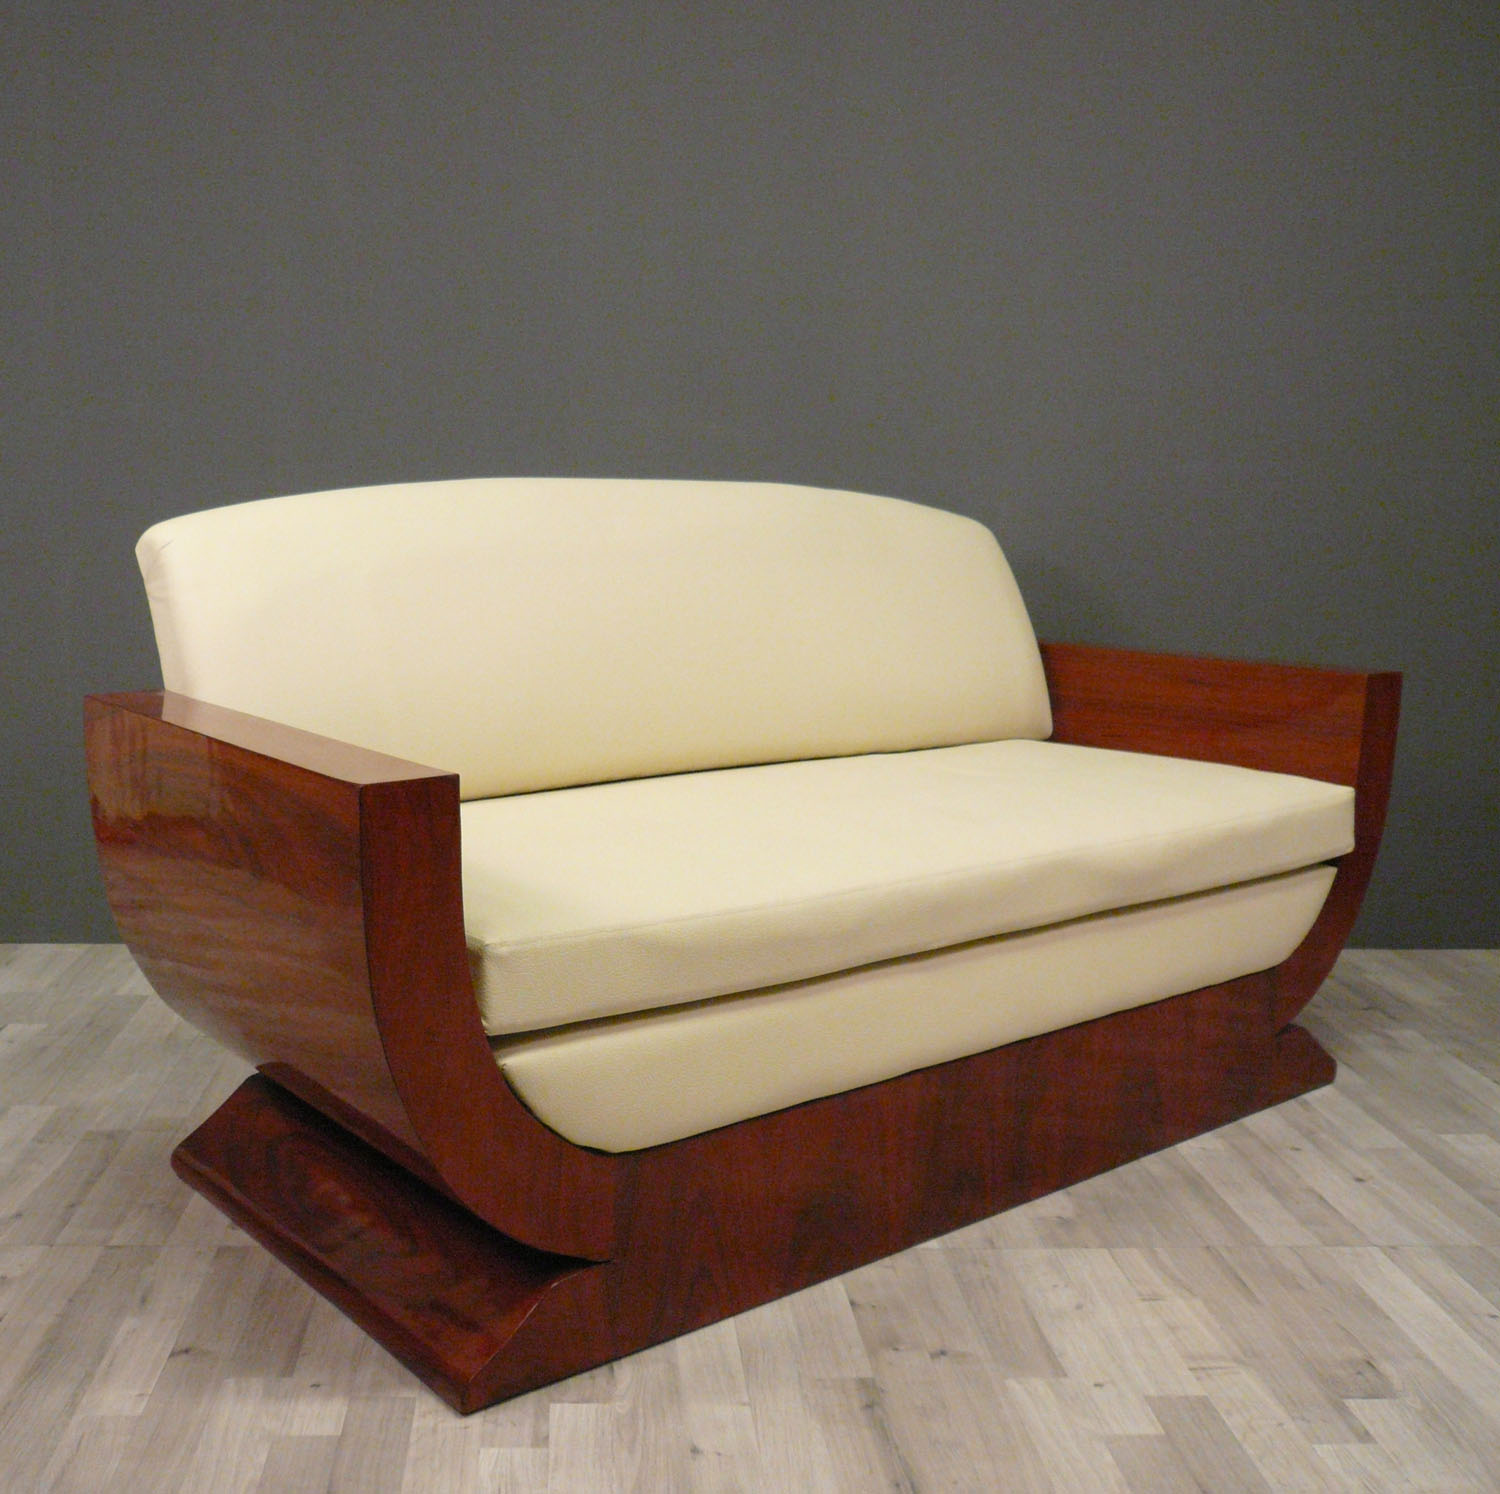 Art deco sofa art deco furniture for Deco meuble furniture richibucto